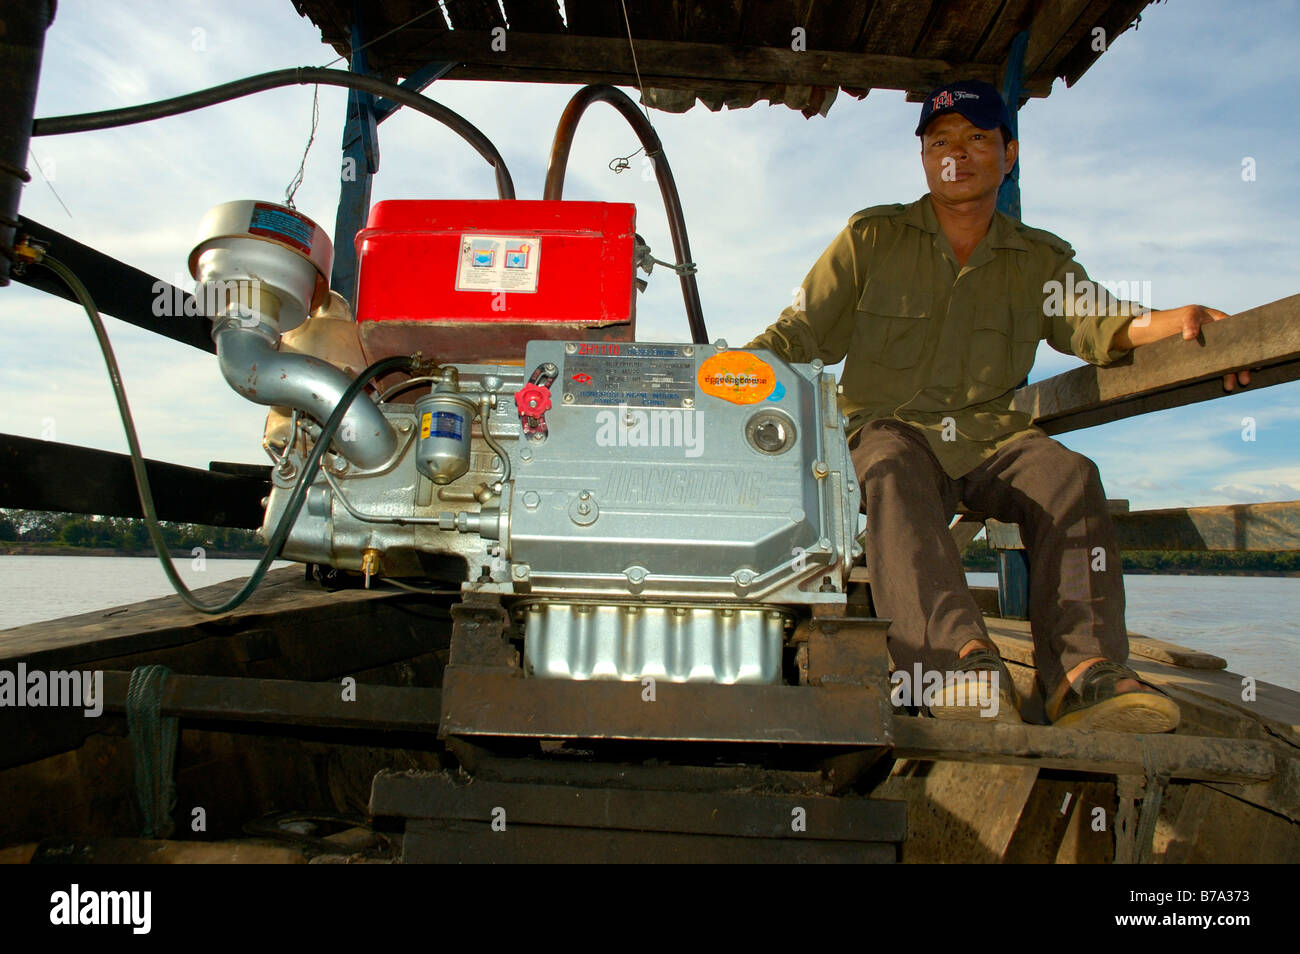 Ferryman in his boat with a new Chinese engine, Stung Treng, Cambodia, Southeast Asia Stock Photo